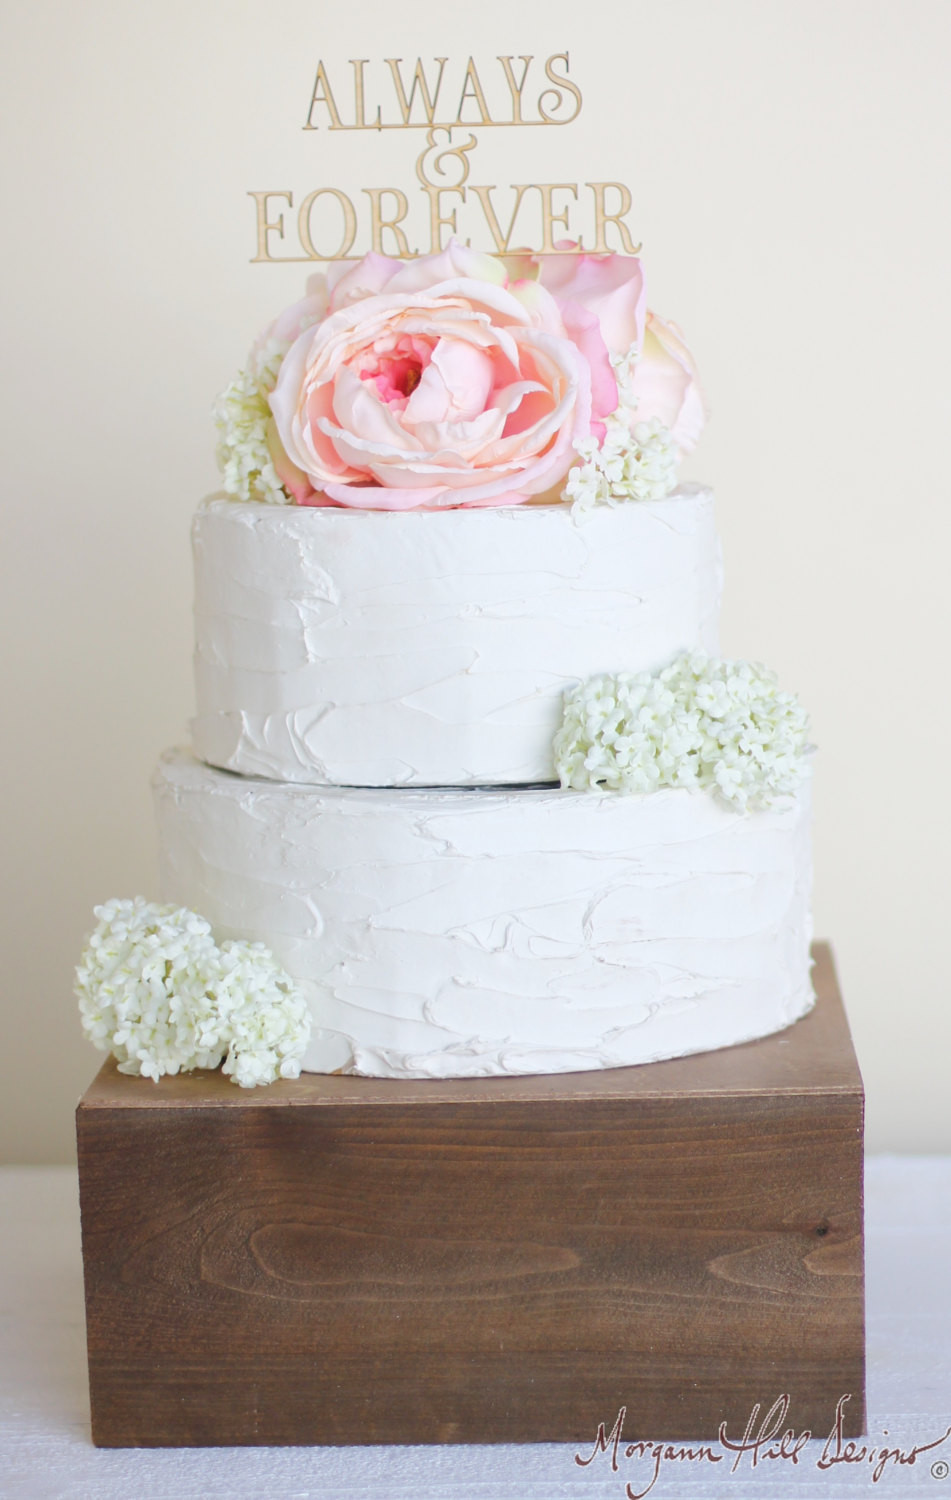 Toppers For Wedding Cakes  27 of the Cutest Wedding Cake Toppers You ll Ever See